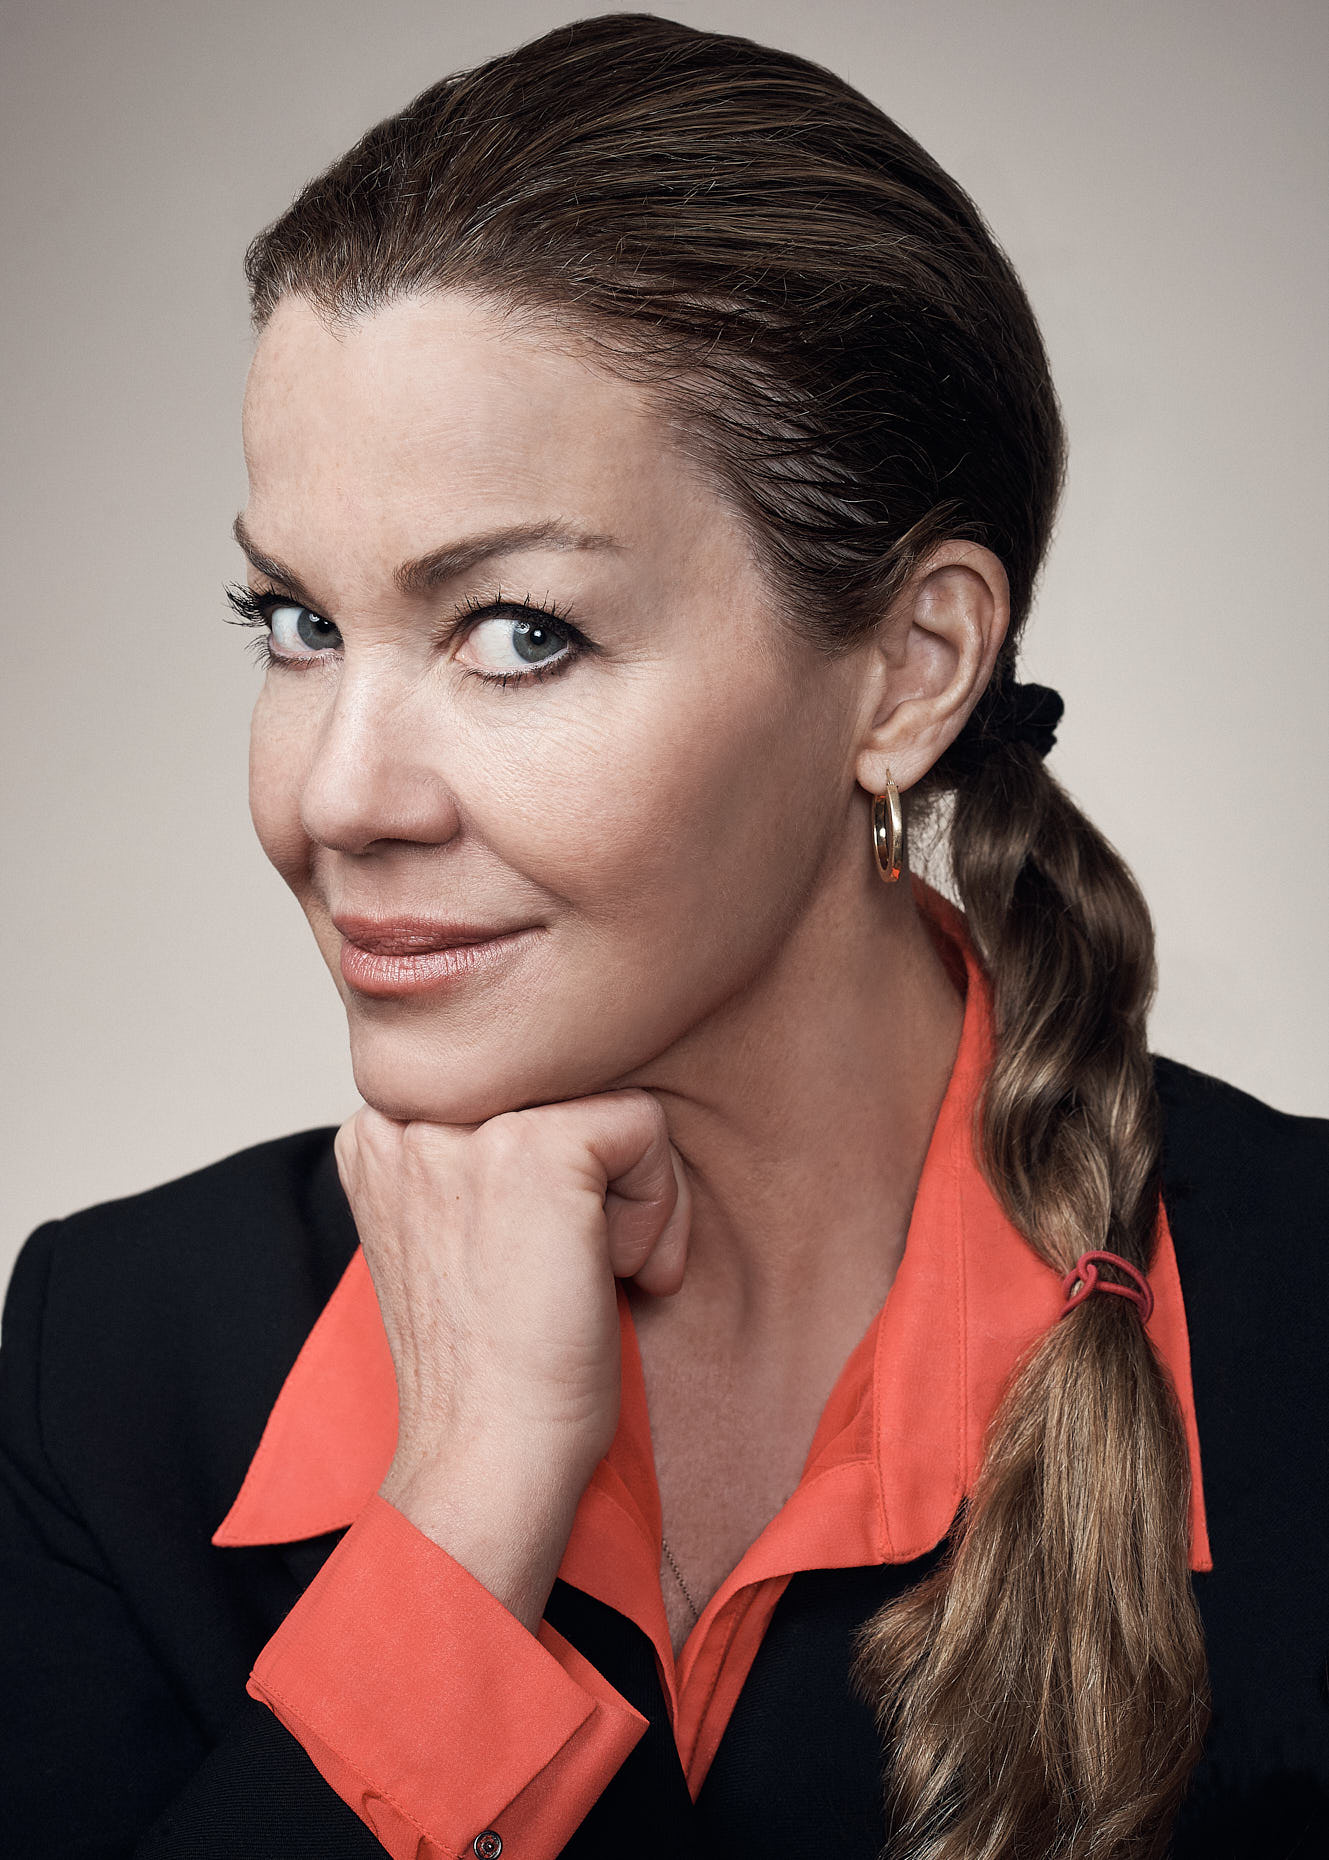 Jason Tracy - Celebrity Photographer Kansas City - Actress Claudia Christian